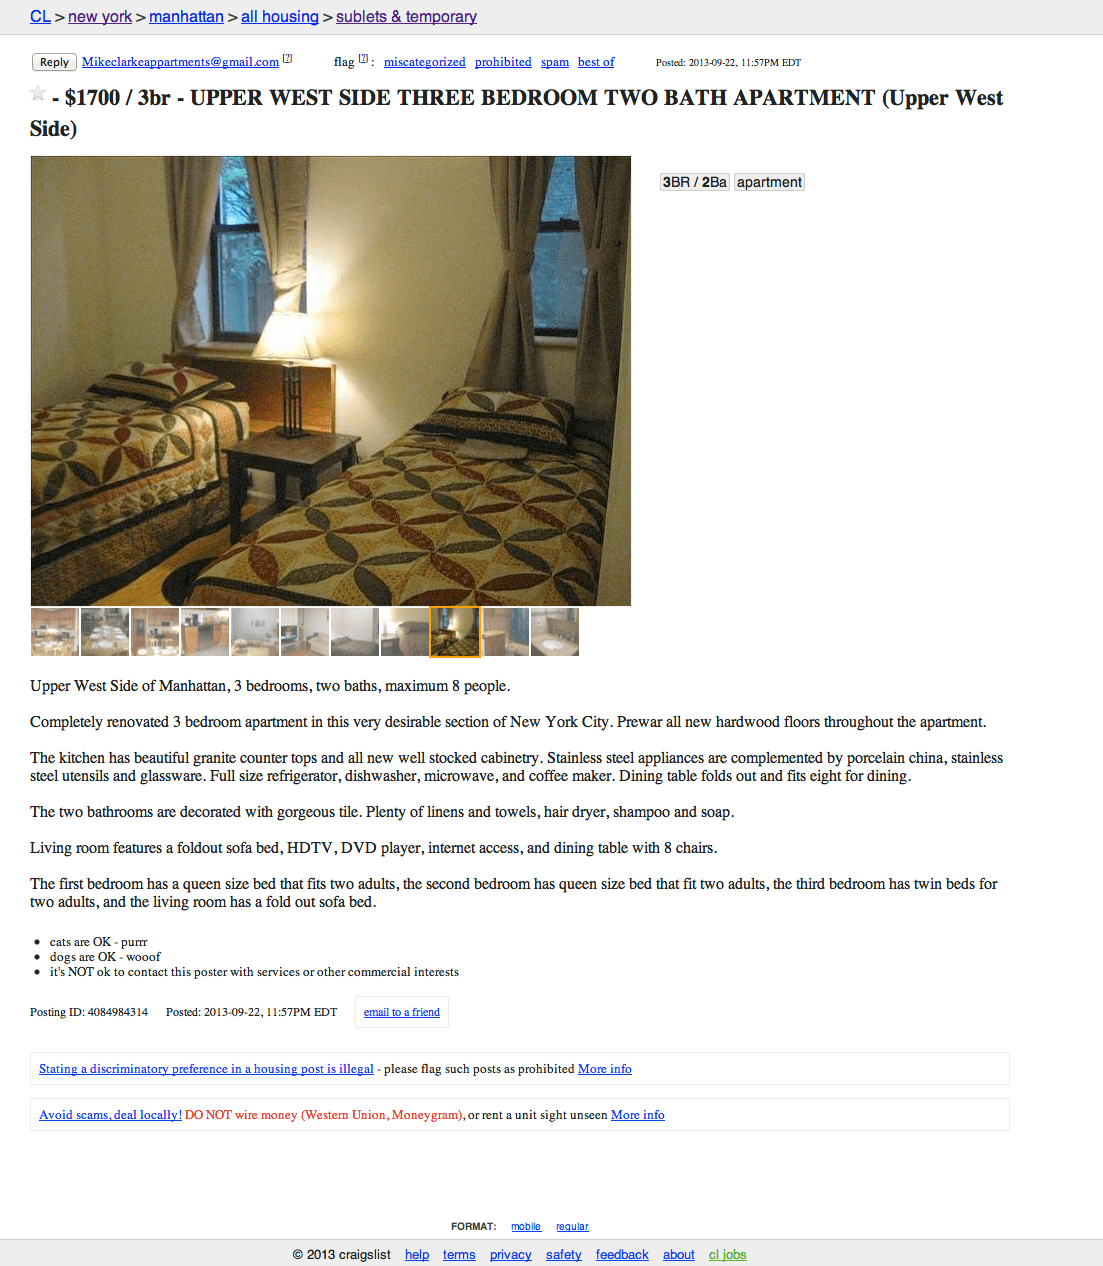 Craigslist Apartment For Rent Nyc: Sniffing Out Rental Scams